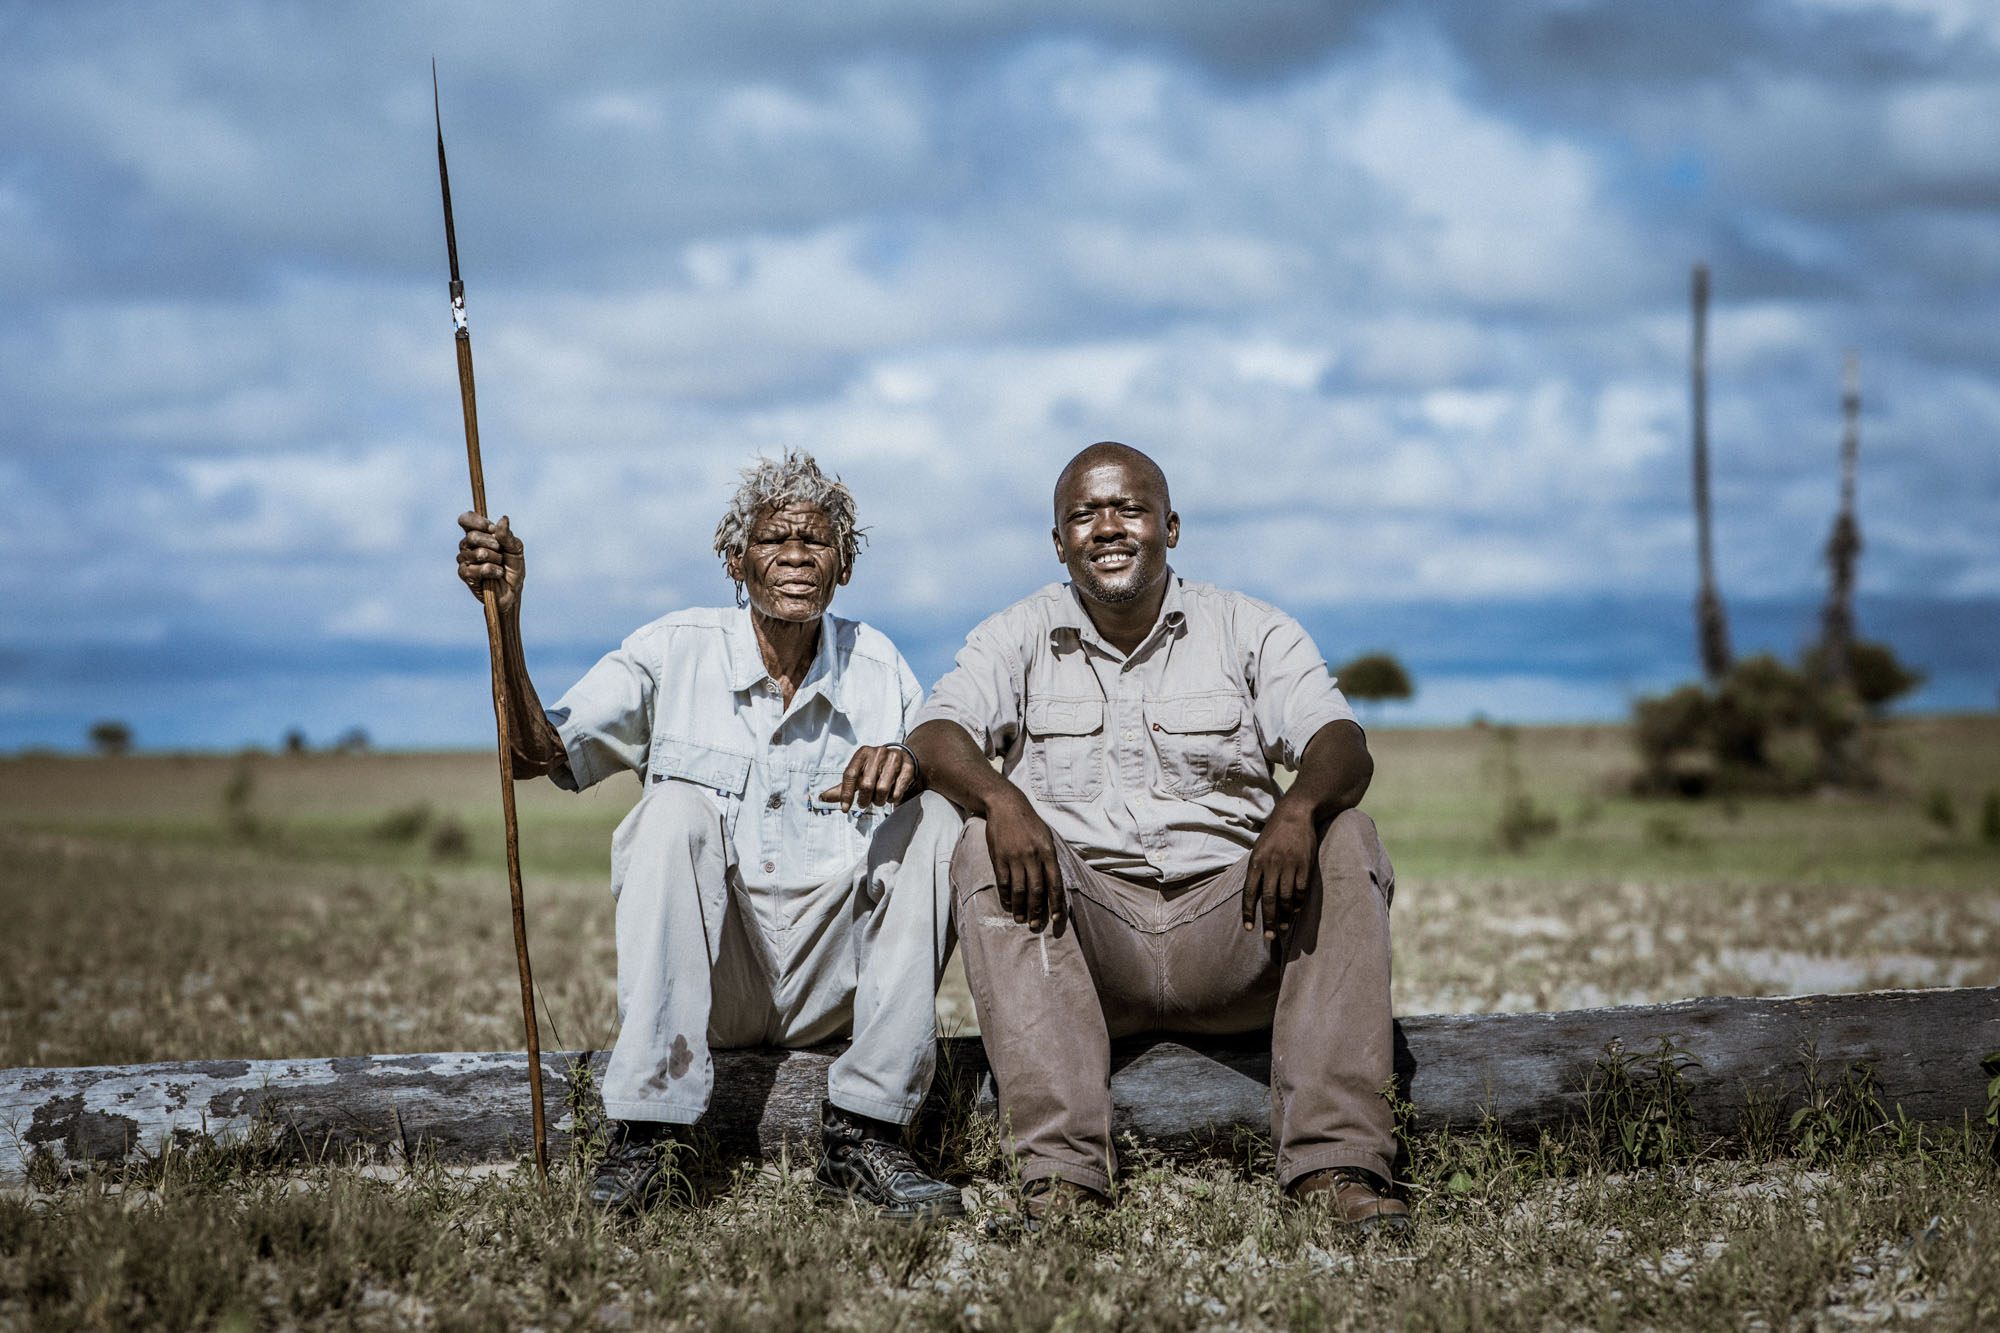 Cobra's home language is Shuakhwe, a distinct Bushman dialect from this part of Botswana. For our interview, he spoke Setswana, and guide Dennis Letshwiti translated for me.